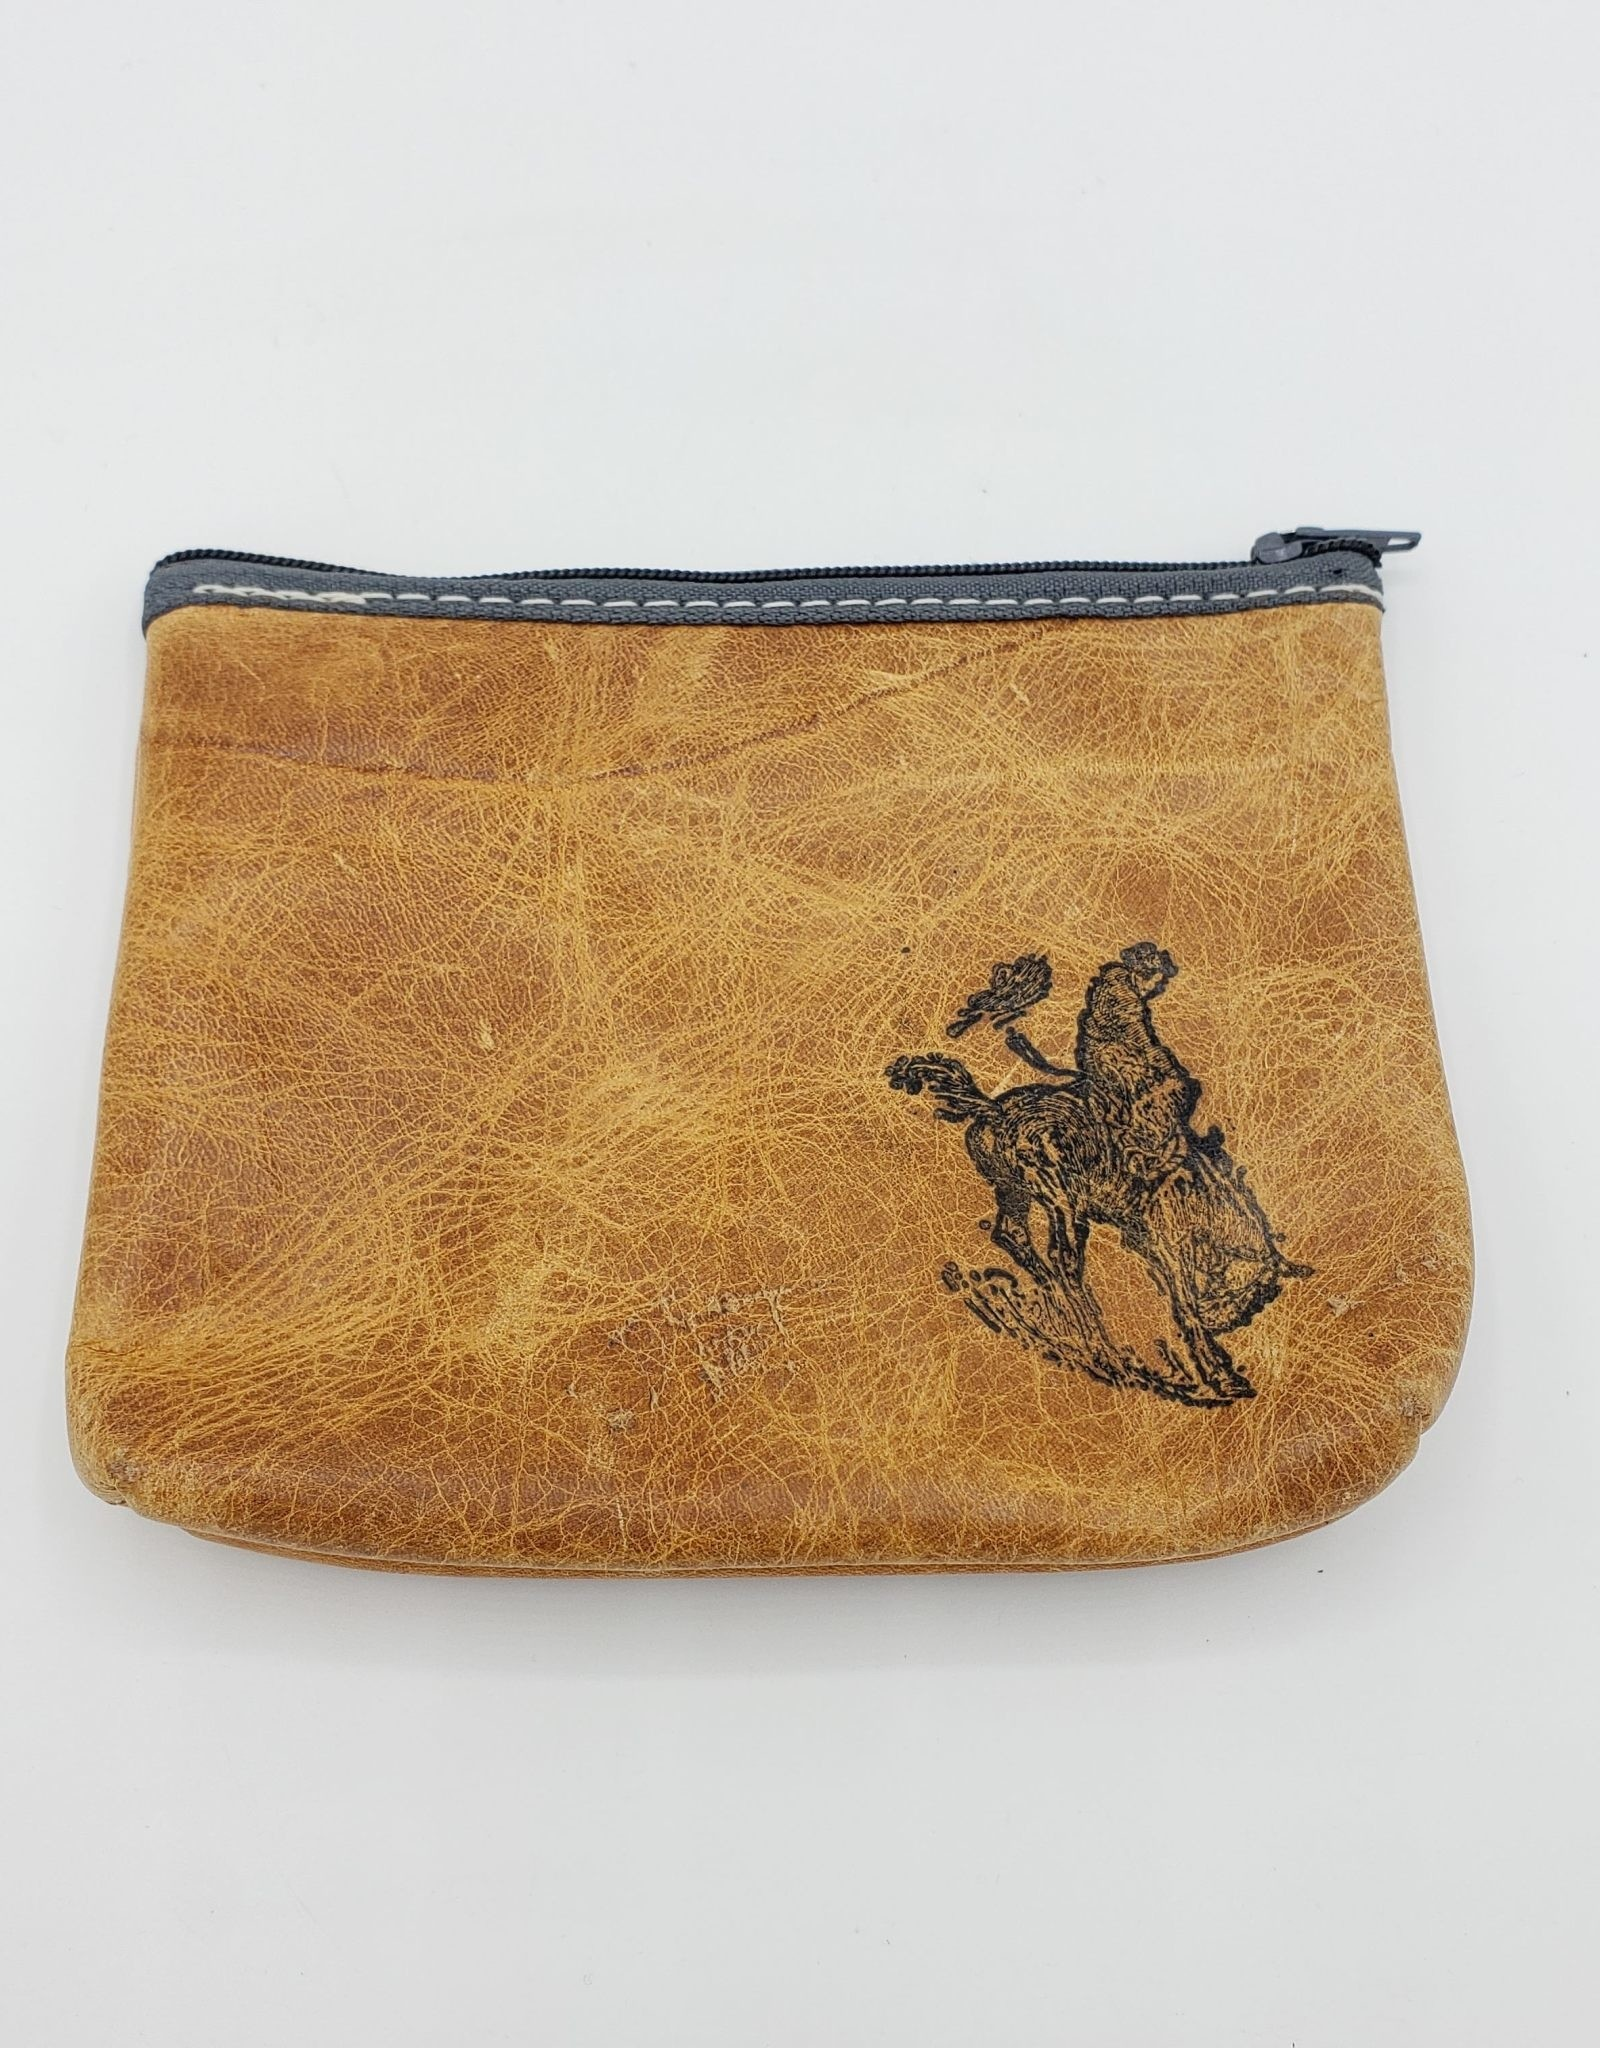 In Blue Handmade Rodeo Leather Zipper Pouch